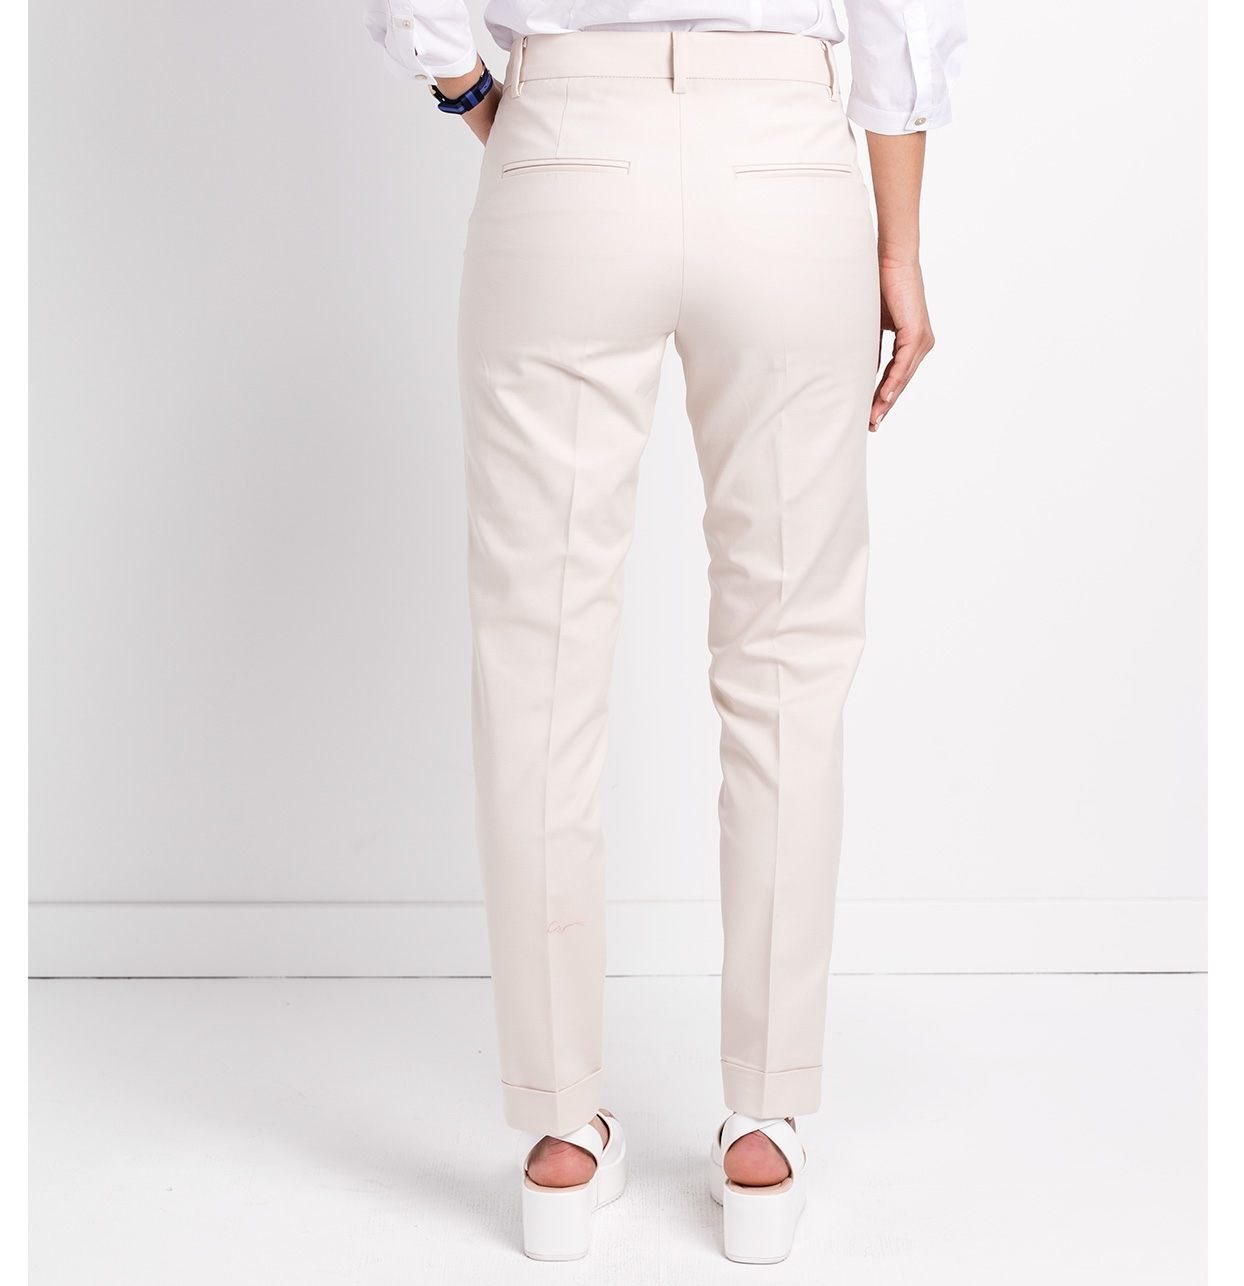 Pantalón woman regular fit color beige - Ítem2